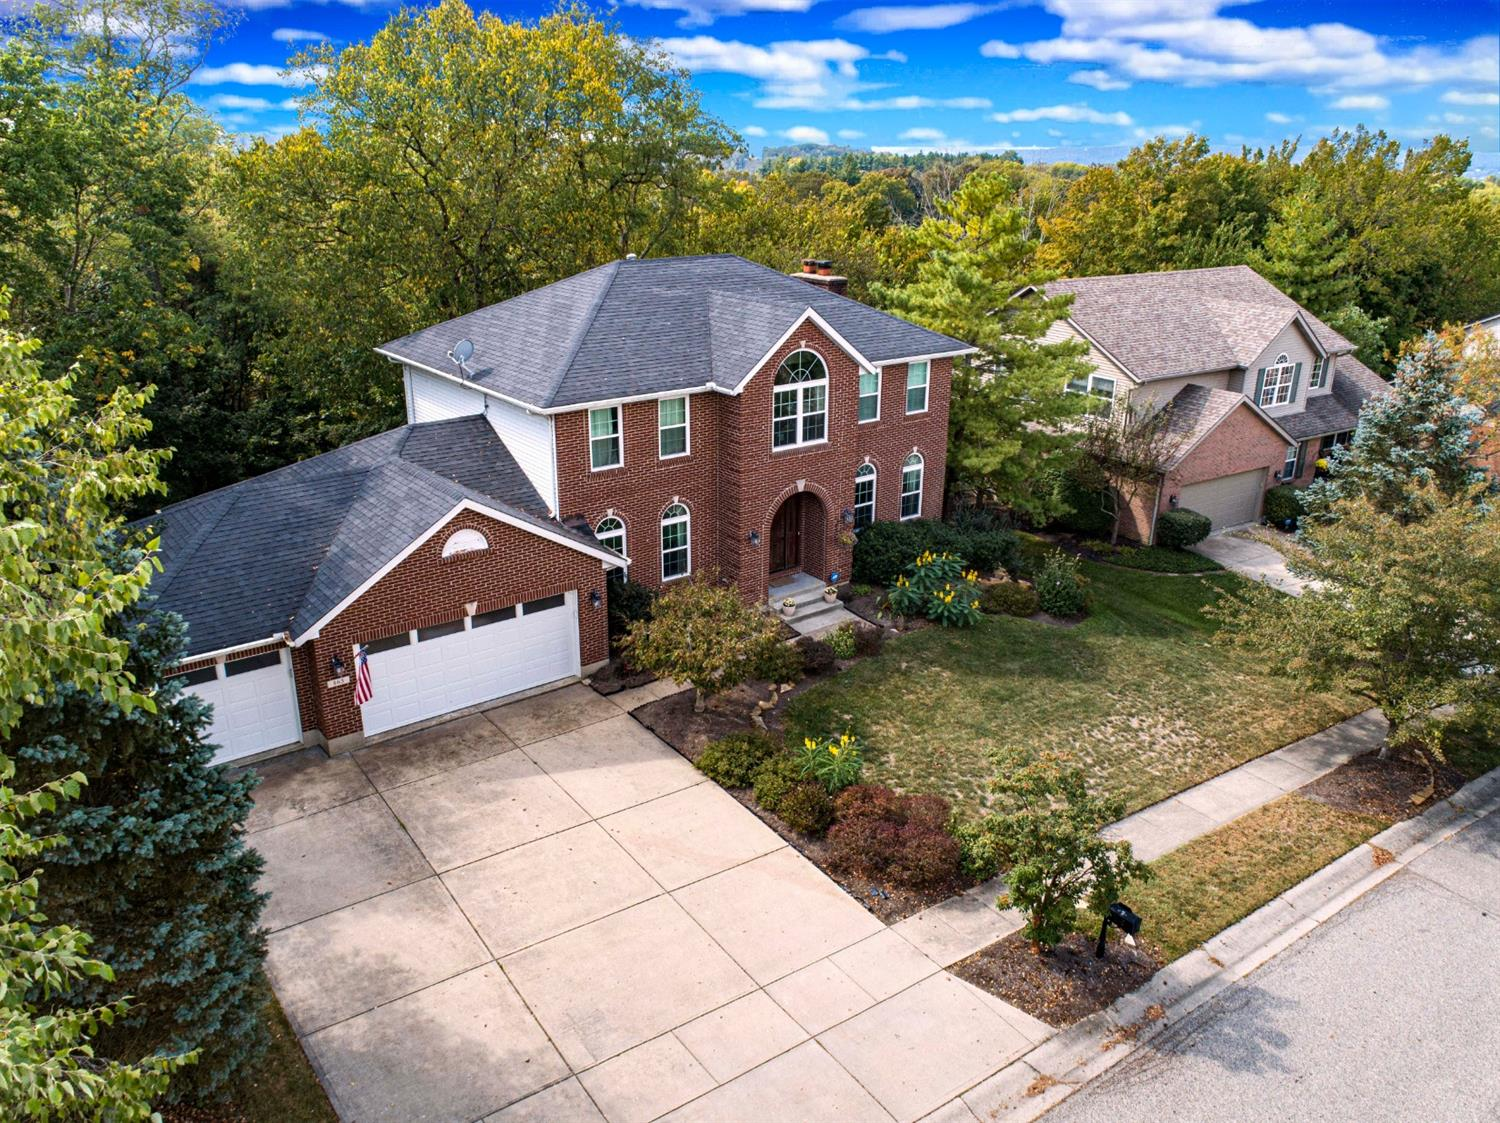 865 Abbot Dr Fairfield, OH